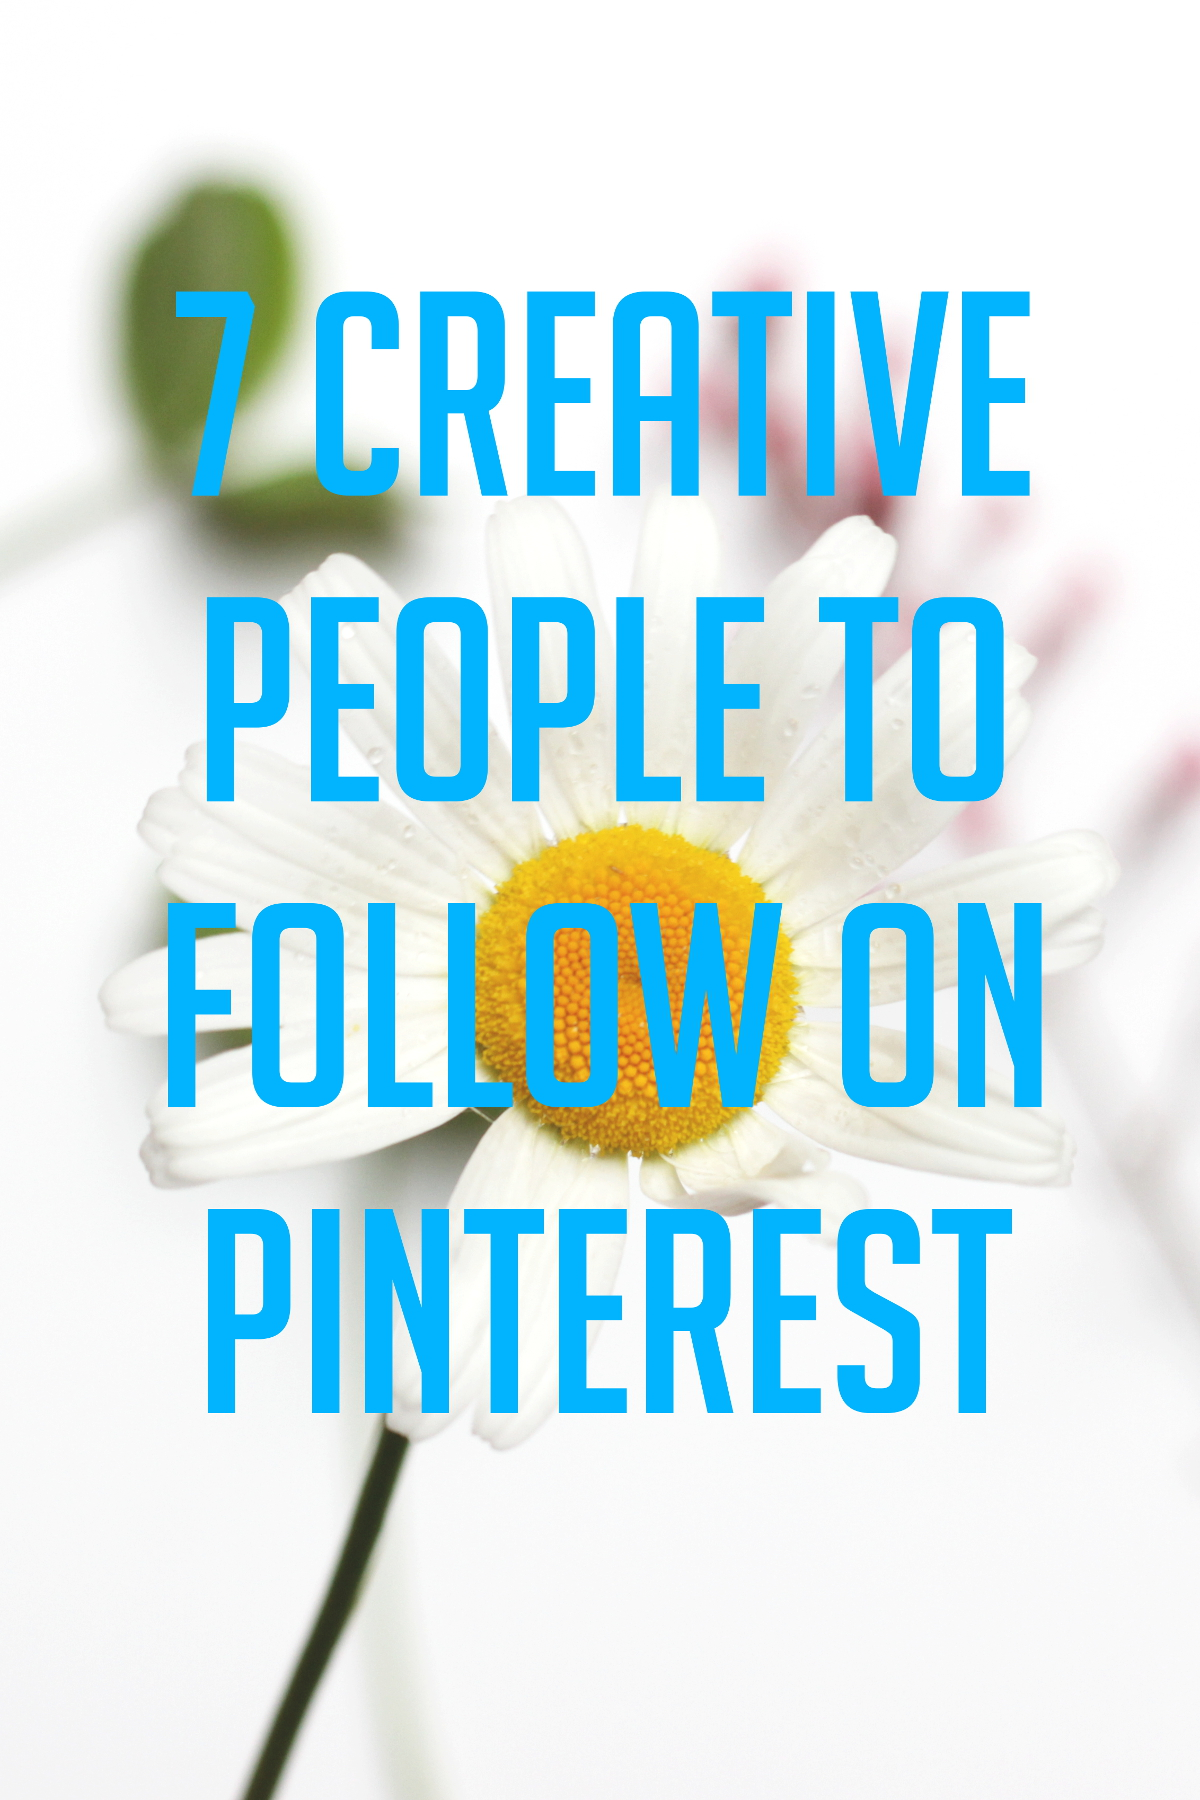 7 Creative People to Follow on Pinterest